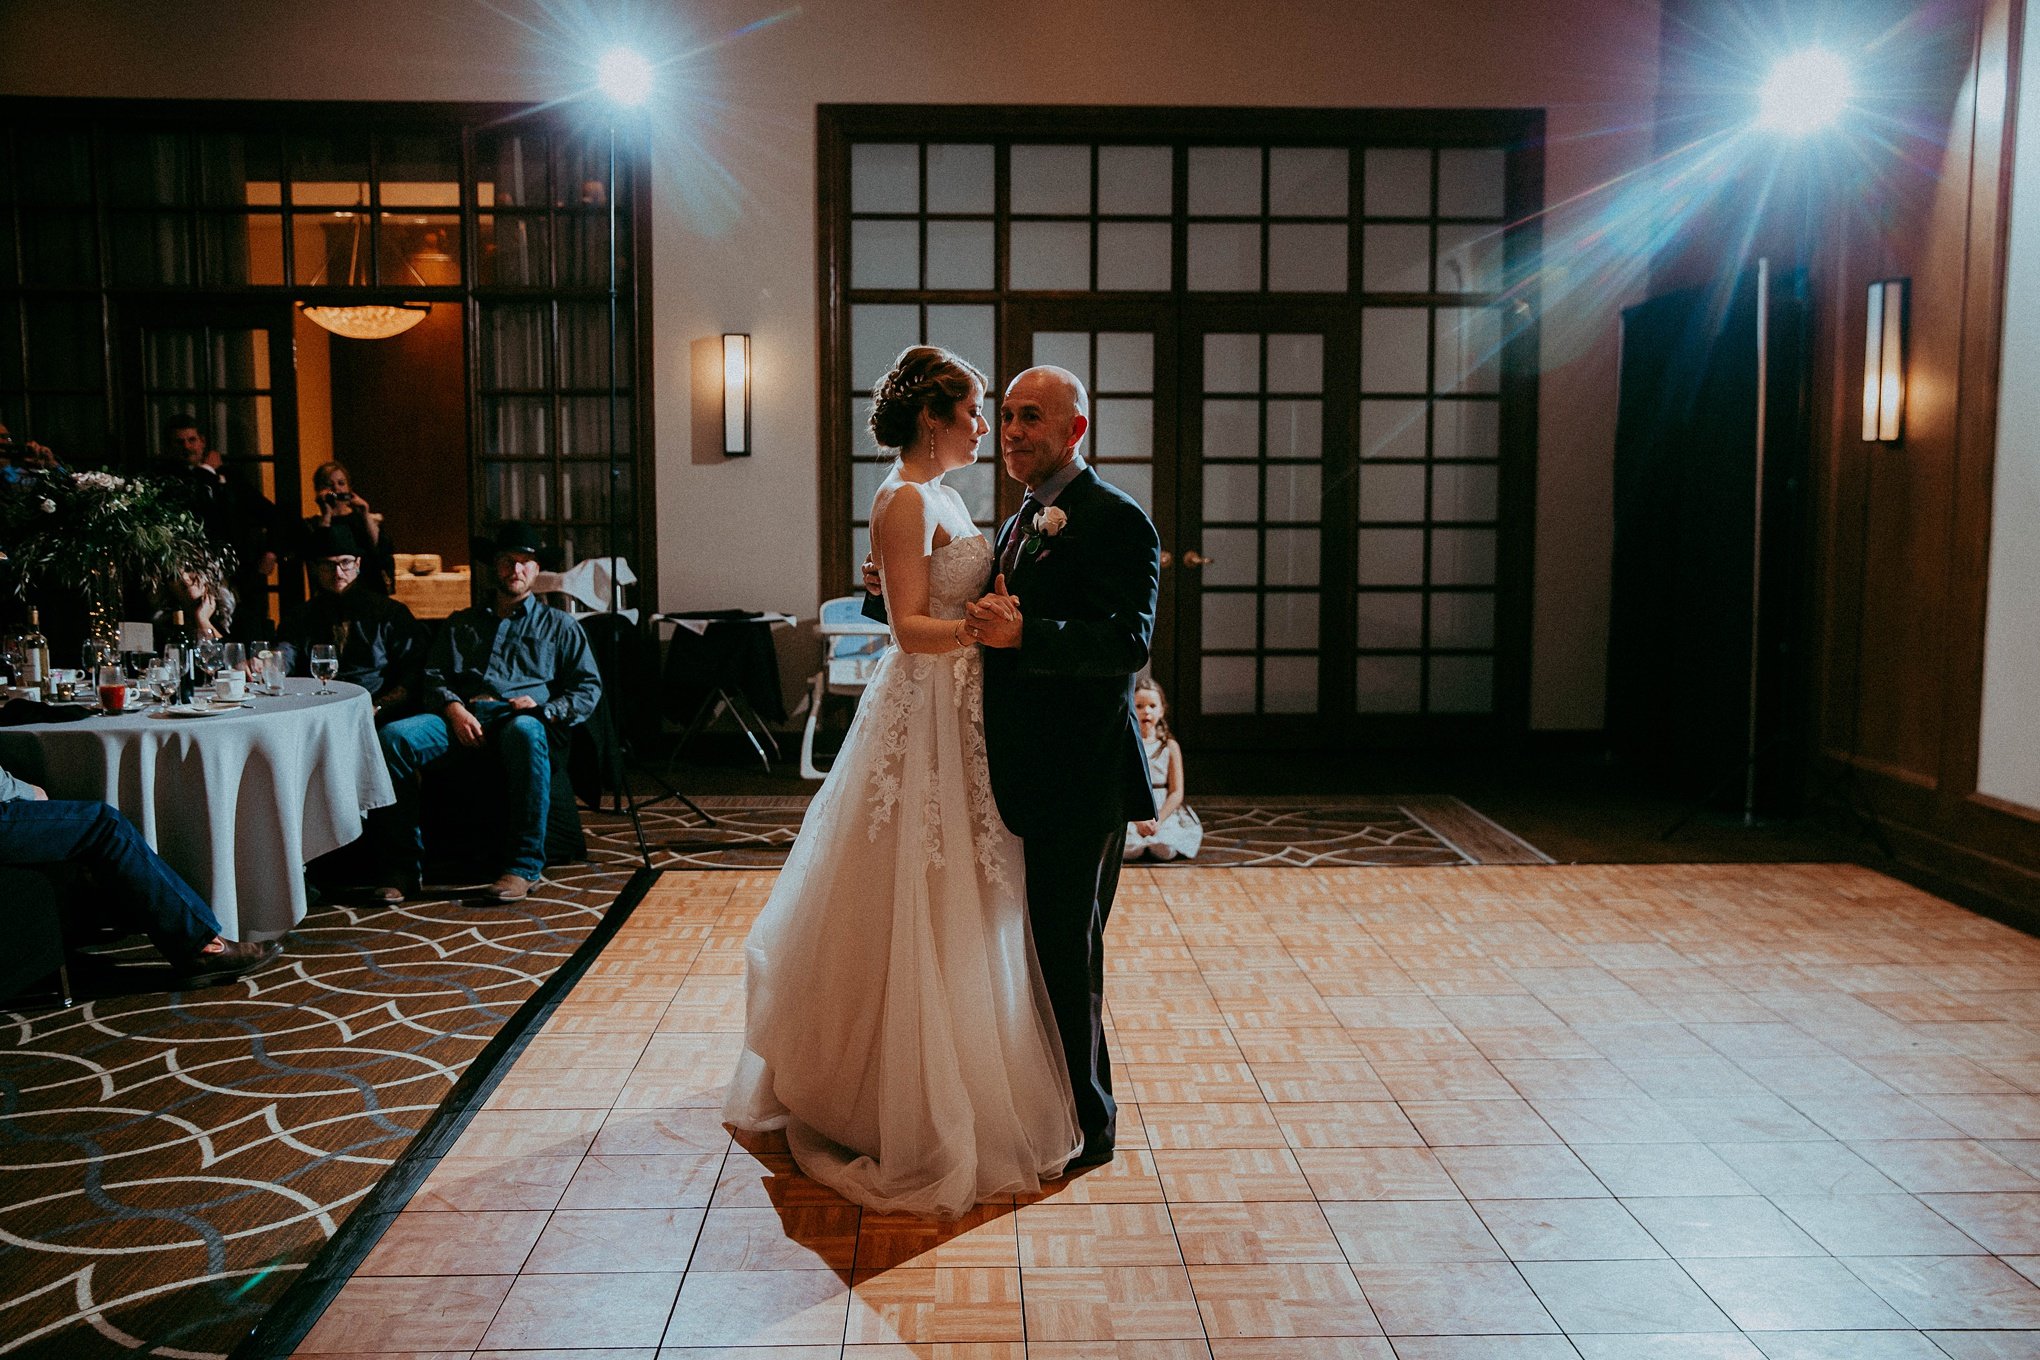 sheraton red deer wedding, red deer wedding photographers, winter wedding, winter wedding alberta, winter wedding photographers, winter wedding photographer